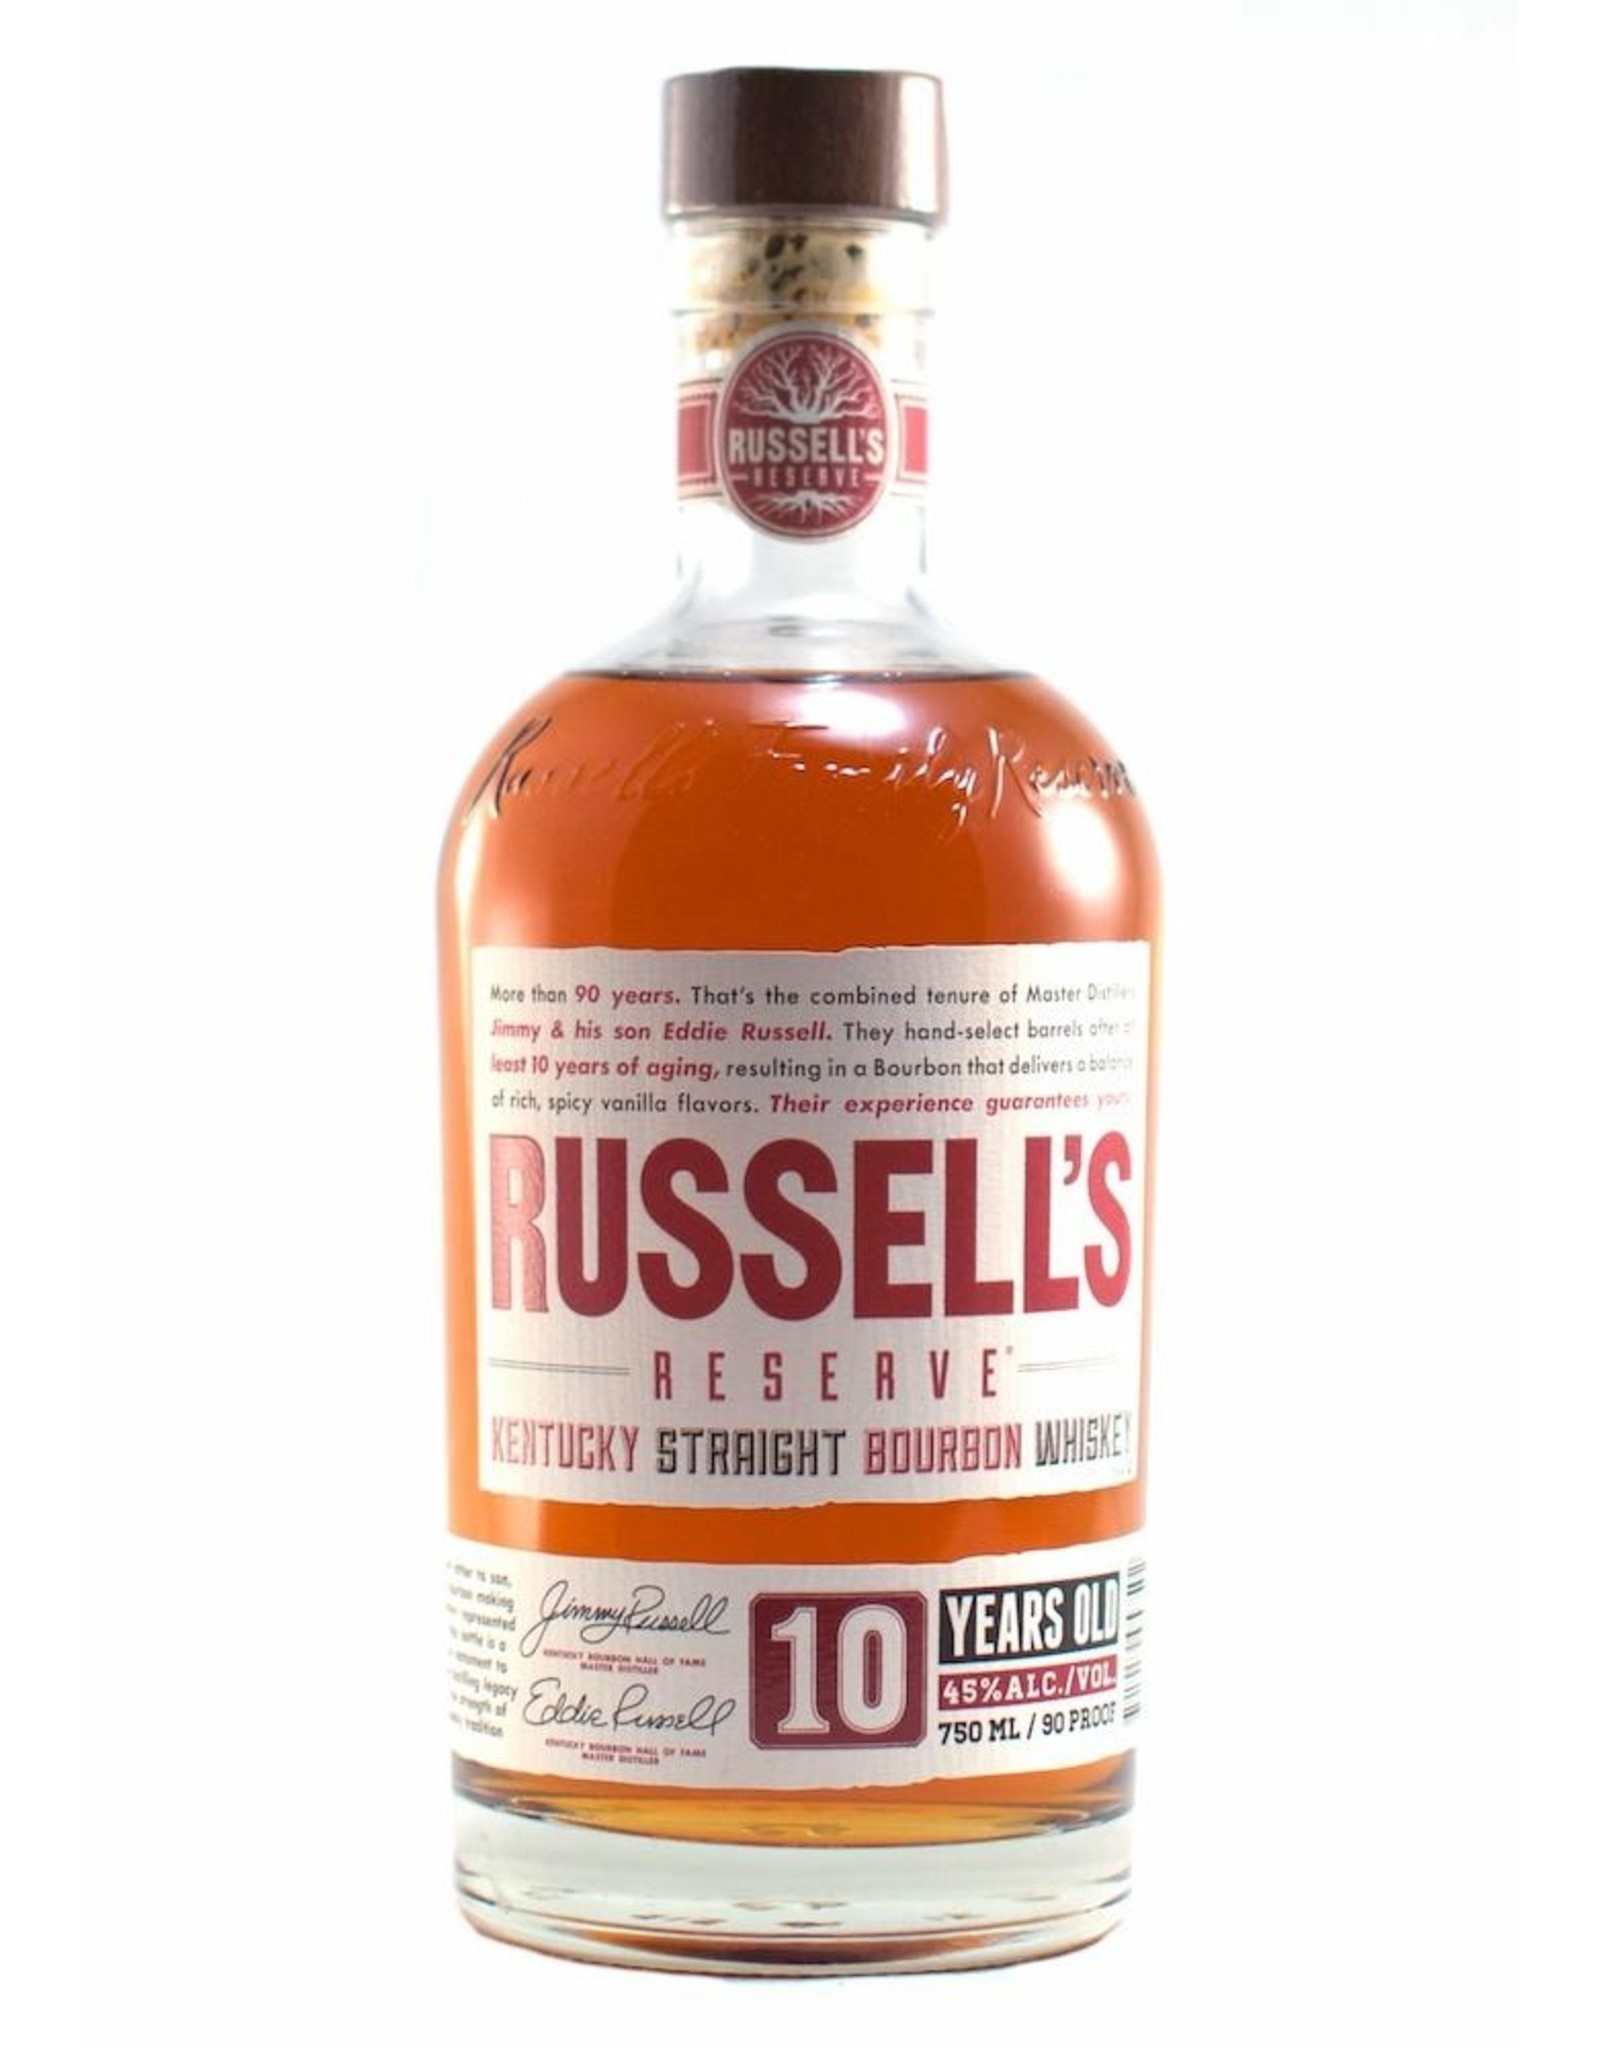 Russell's Reserve 10 Year Bourbon